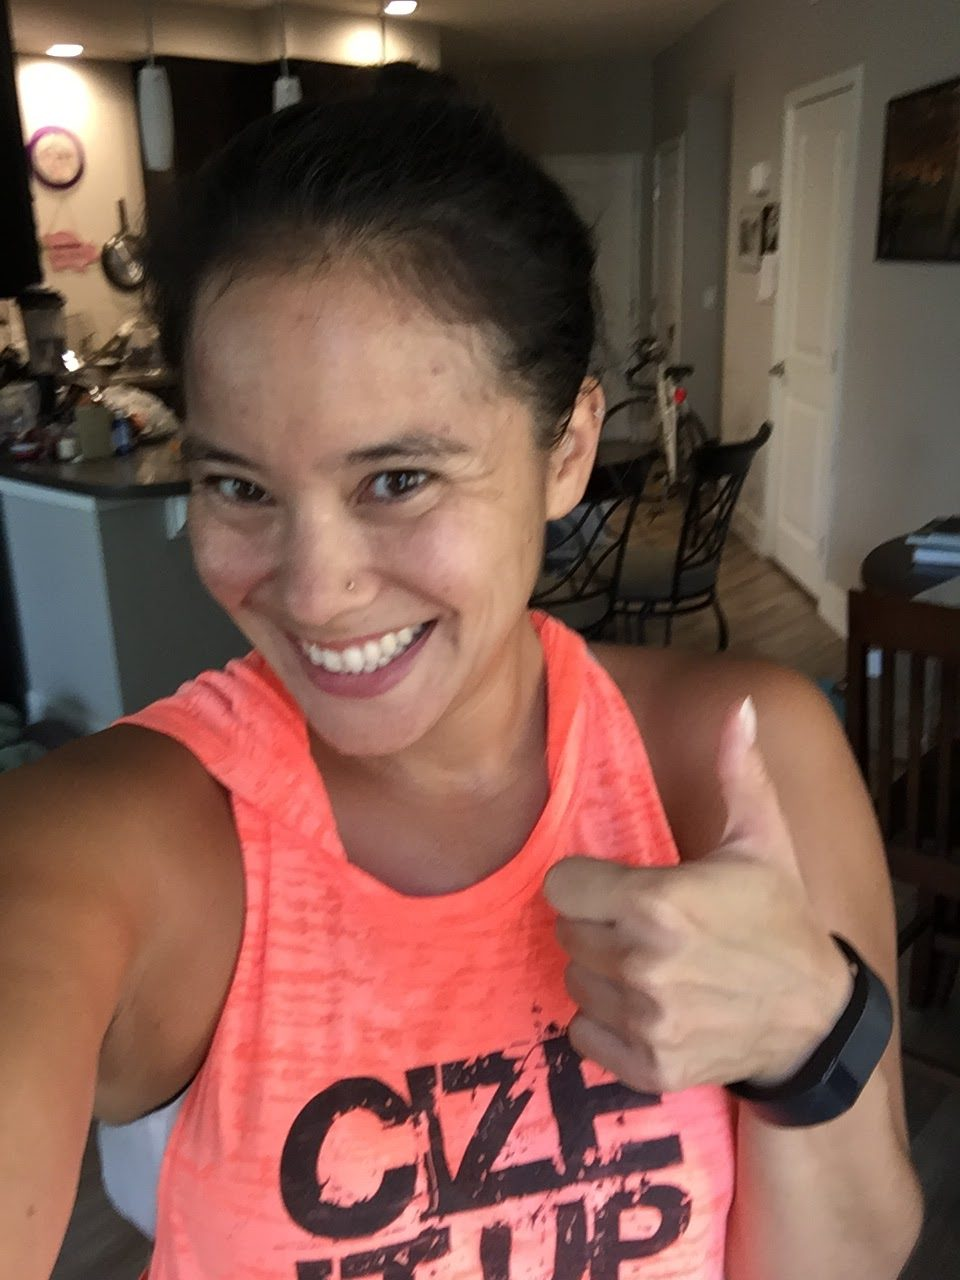 21 day fix day 4: Lower Fix Extreme